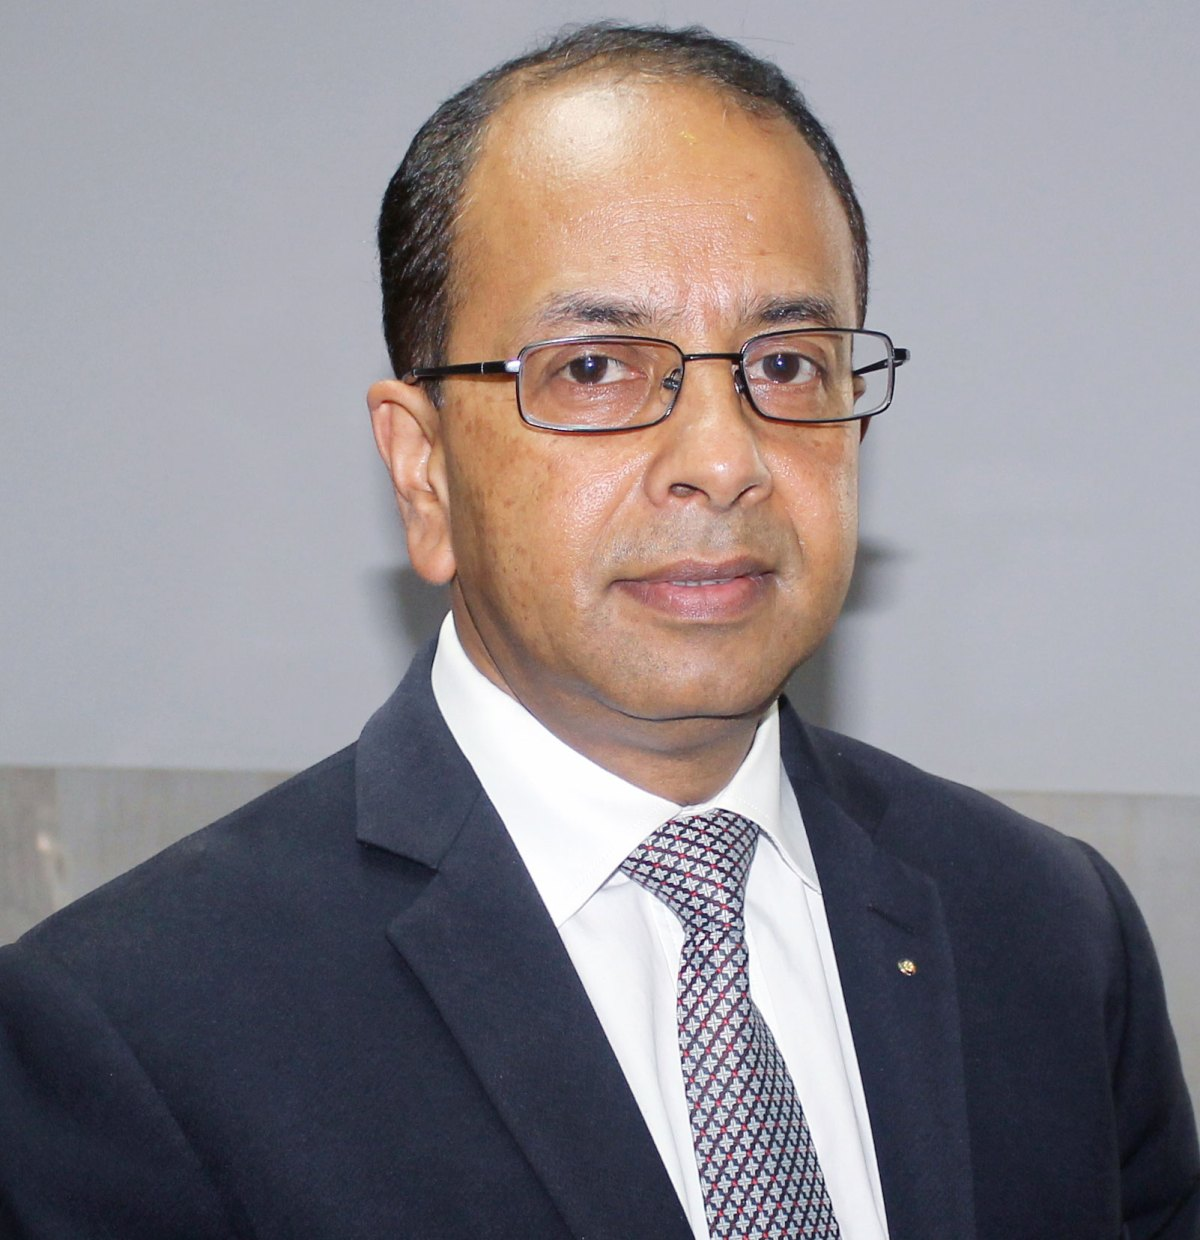 https://i0.wp.com/ceo.glocalnepal.com/wp-content/uploads/2021/03/Mr.-Birendra-Pandey-Vice-President-Confederation-of-Nepalese-Industries-CNI.jpg?w=1200&ssl=1